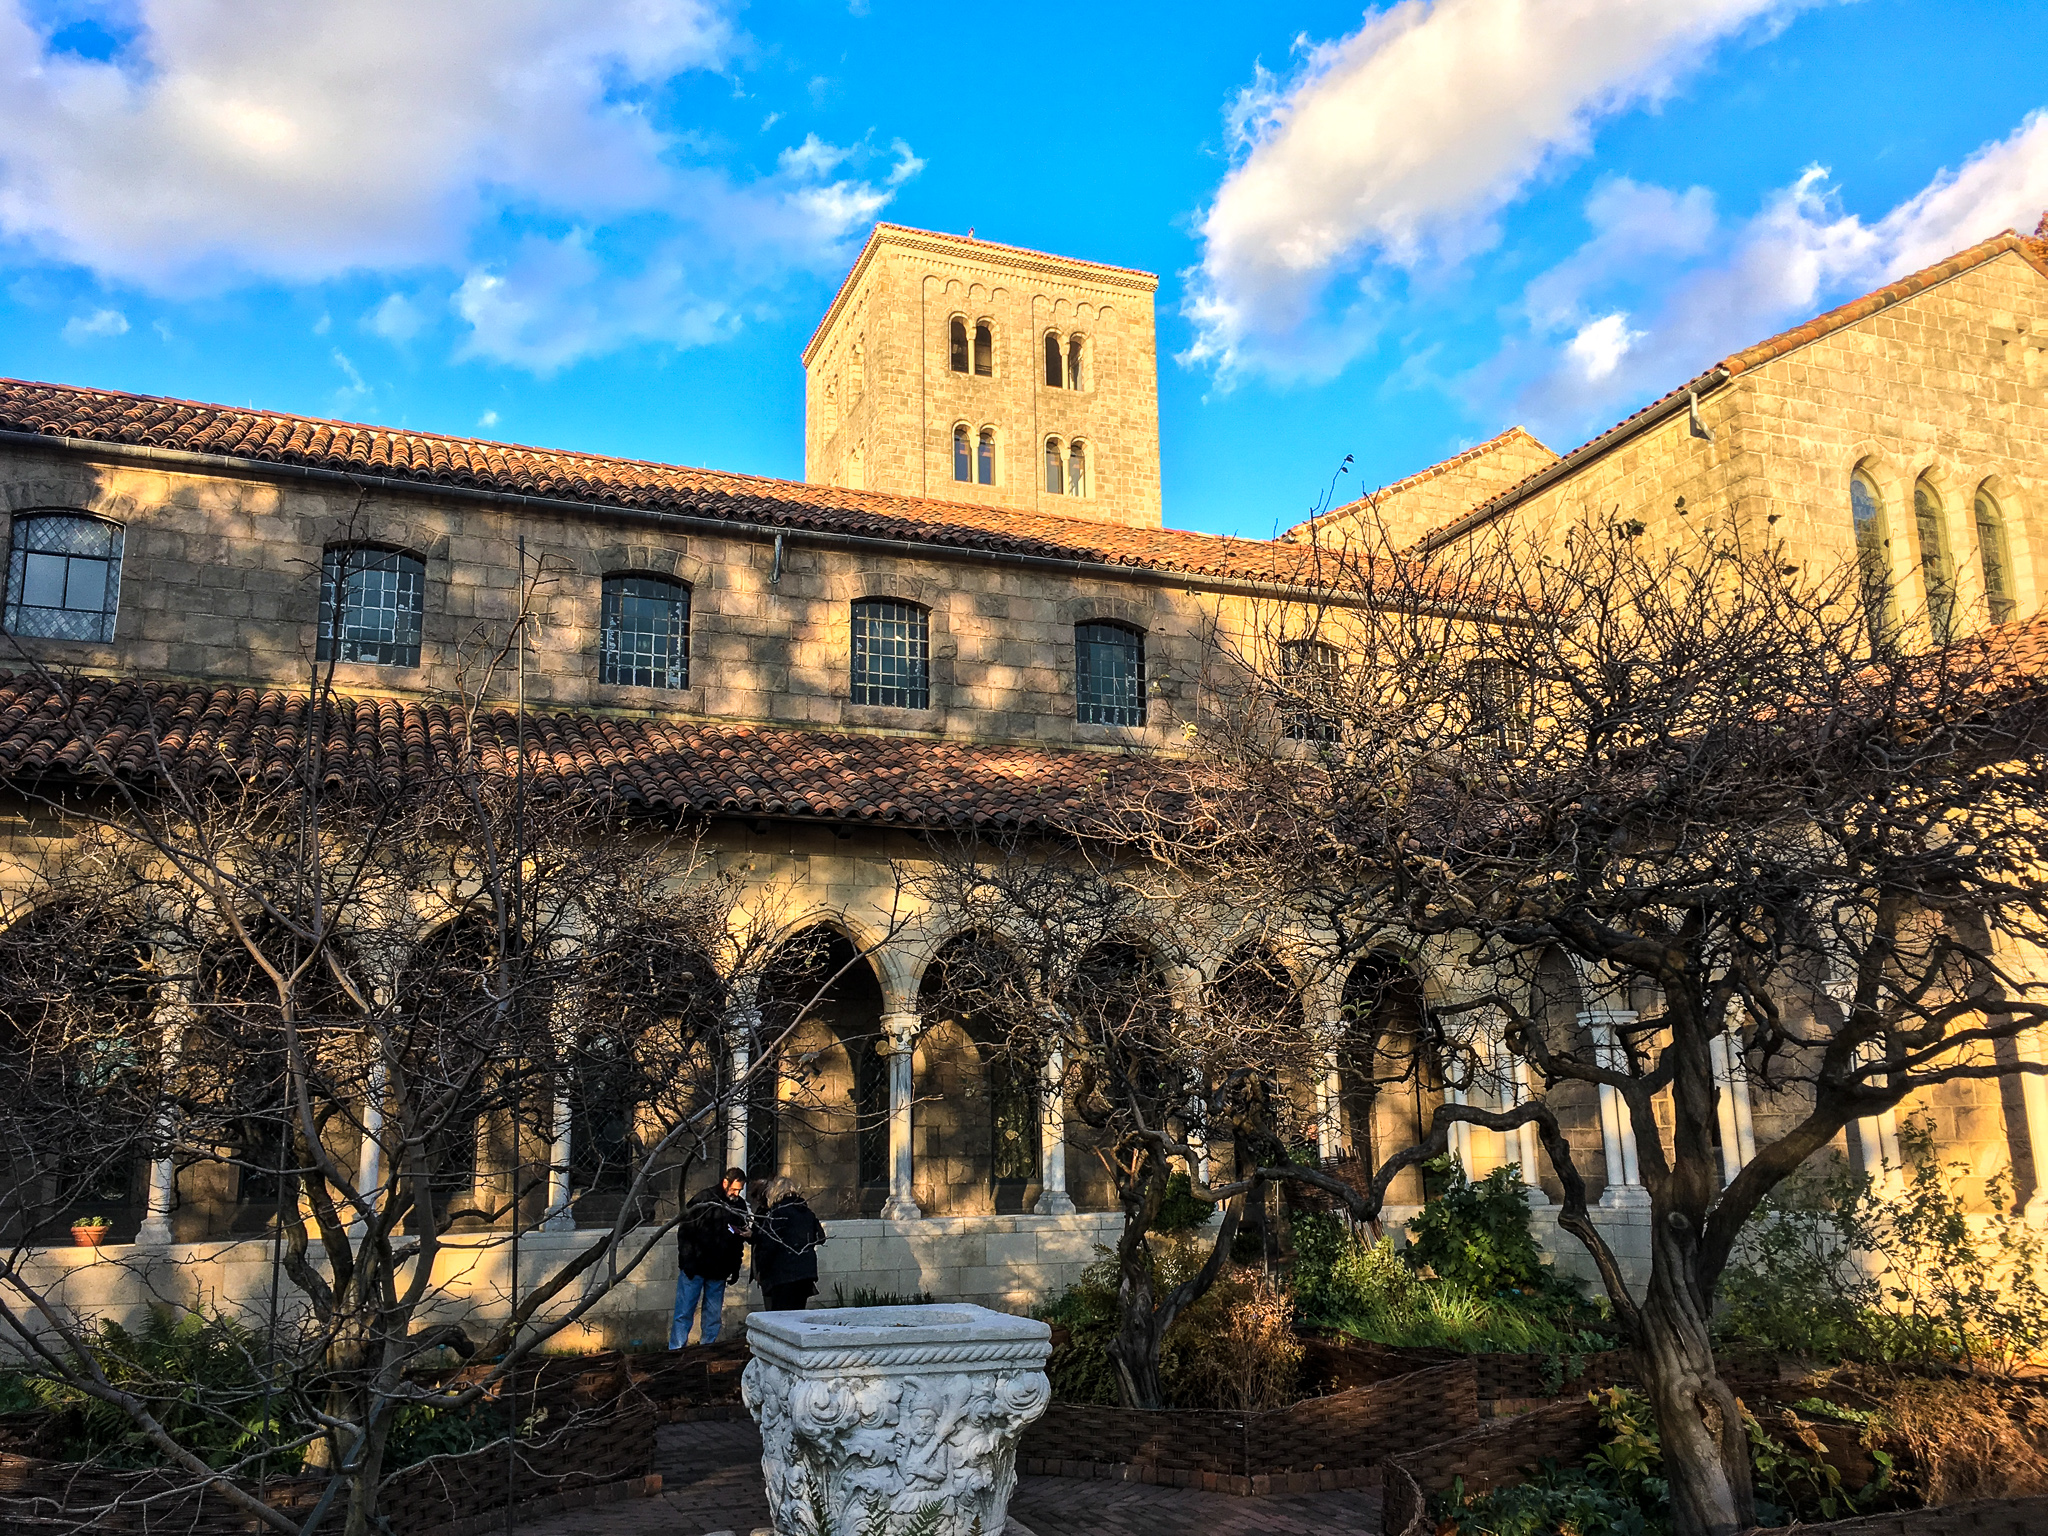 visiting the met? don't miss the cloisters